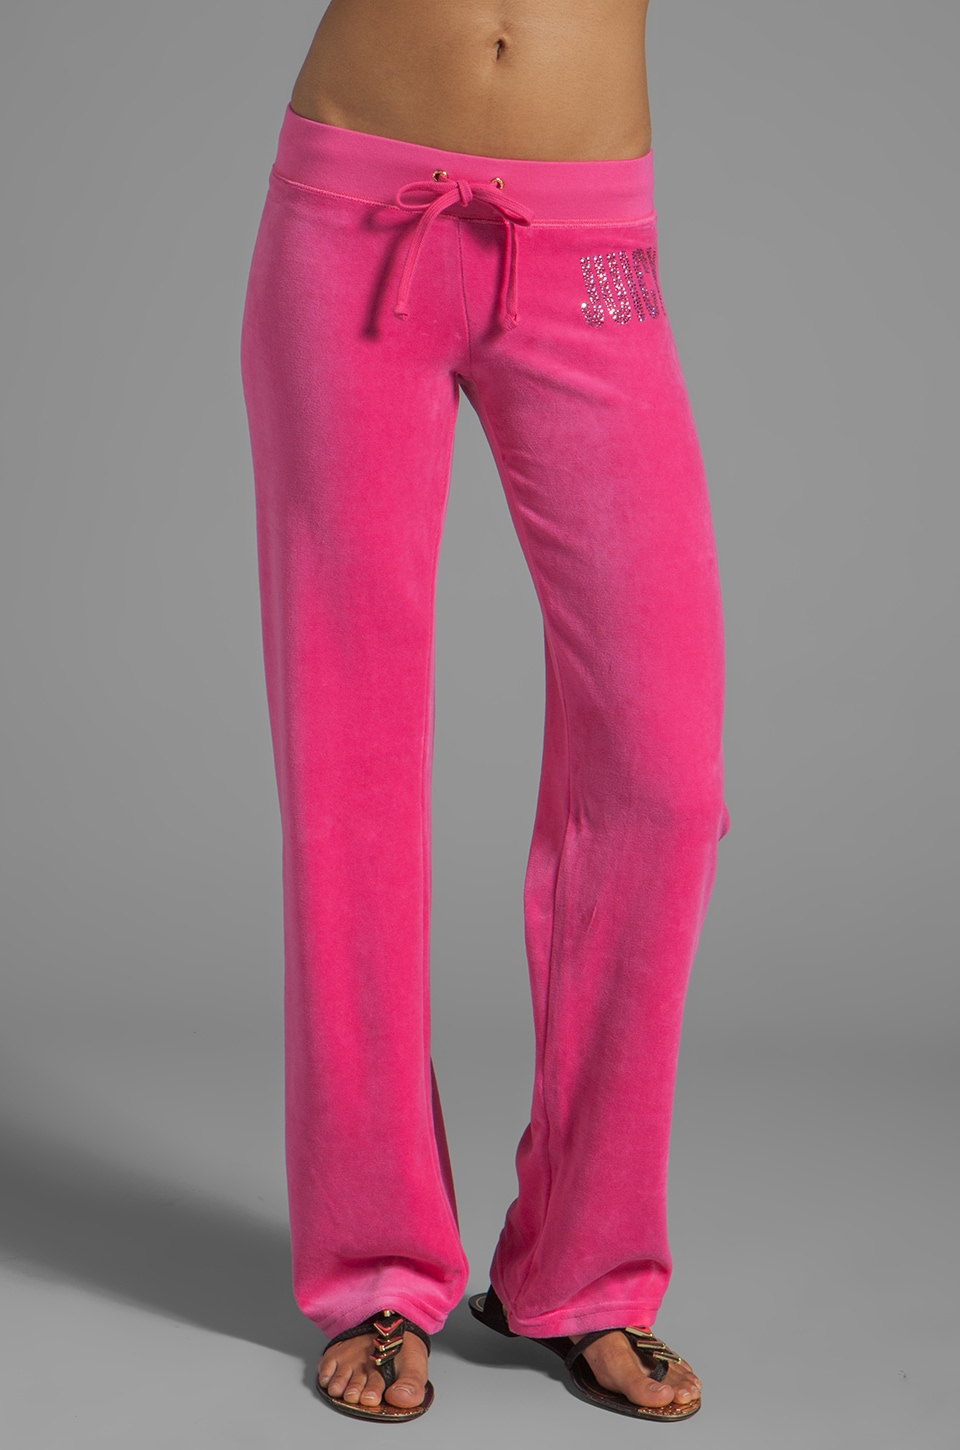 Juicy Couture Velour Choose Juicy Sweatpant in Dragonfruit